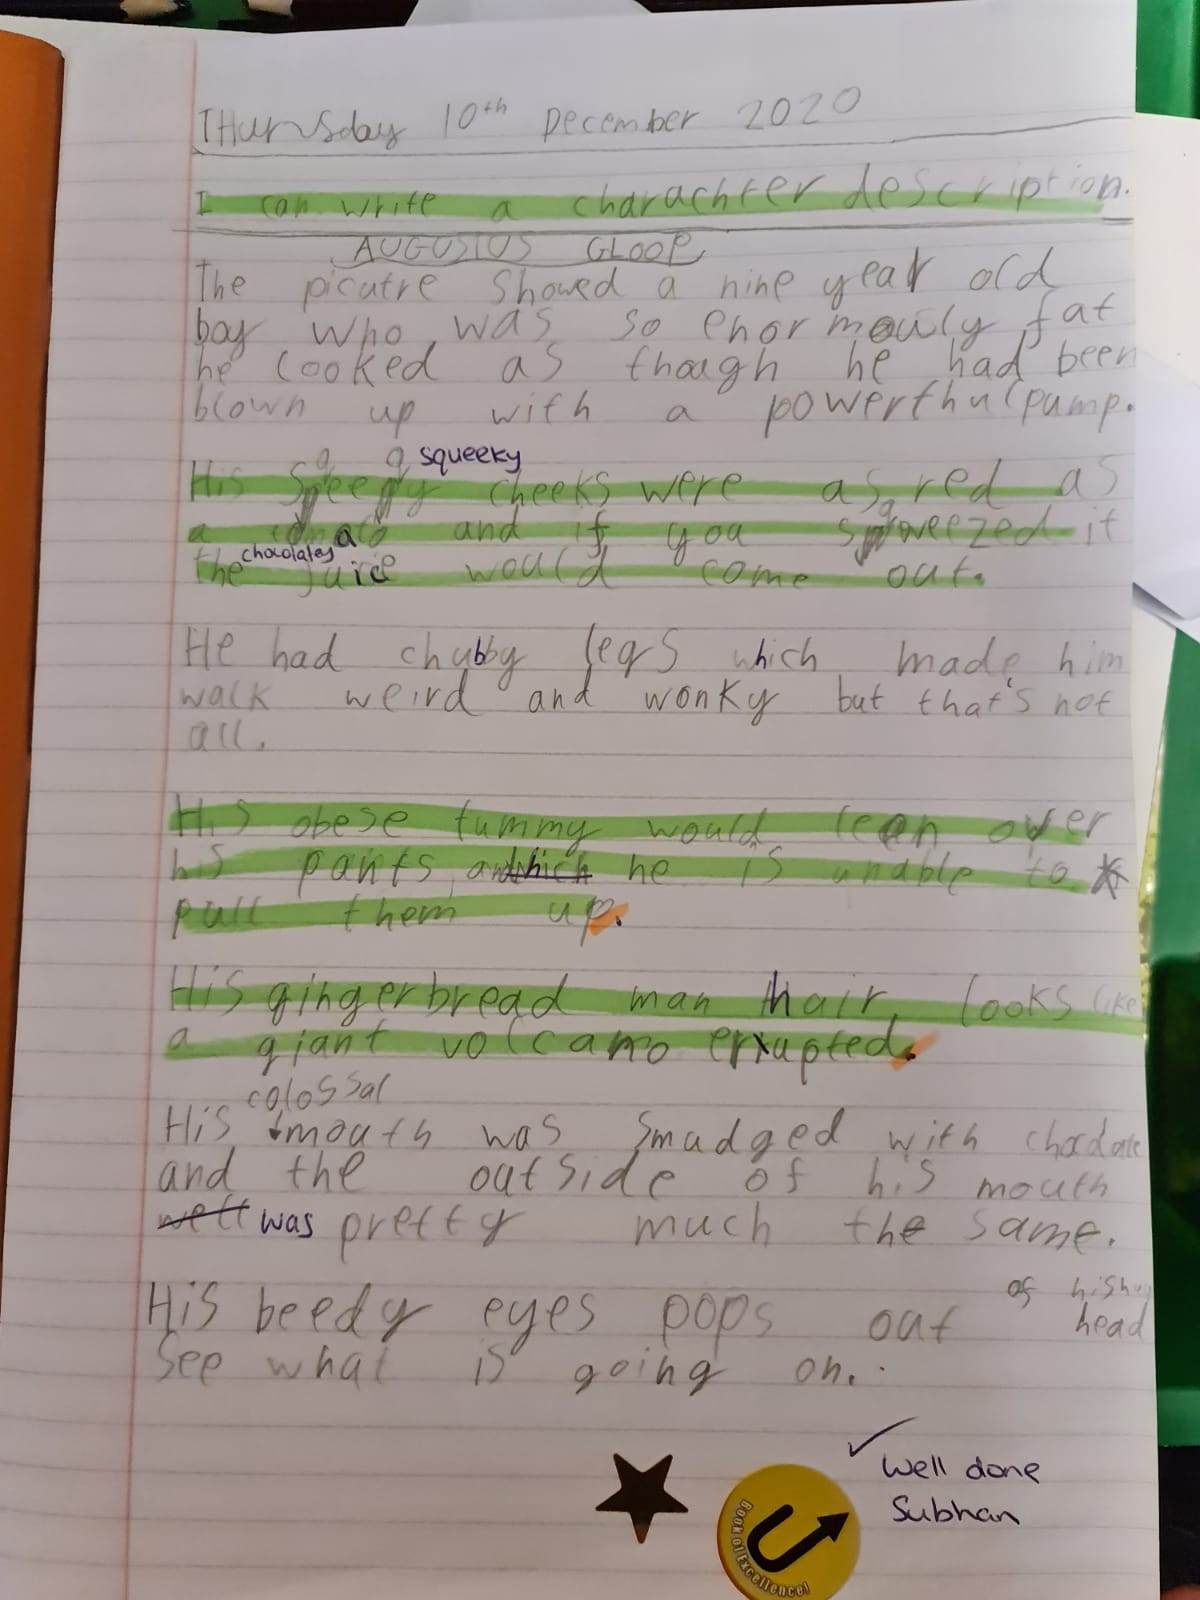 Subhan's excellent writing!